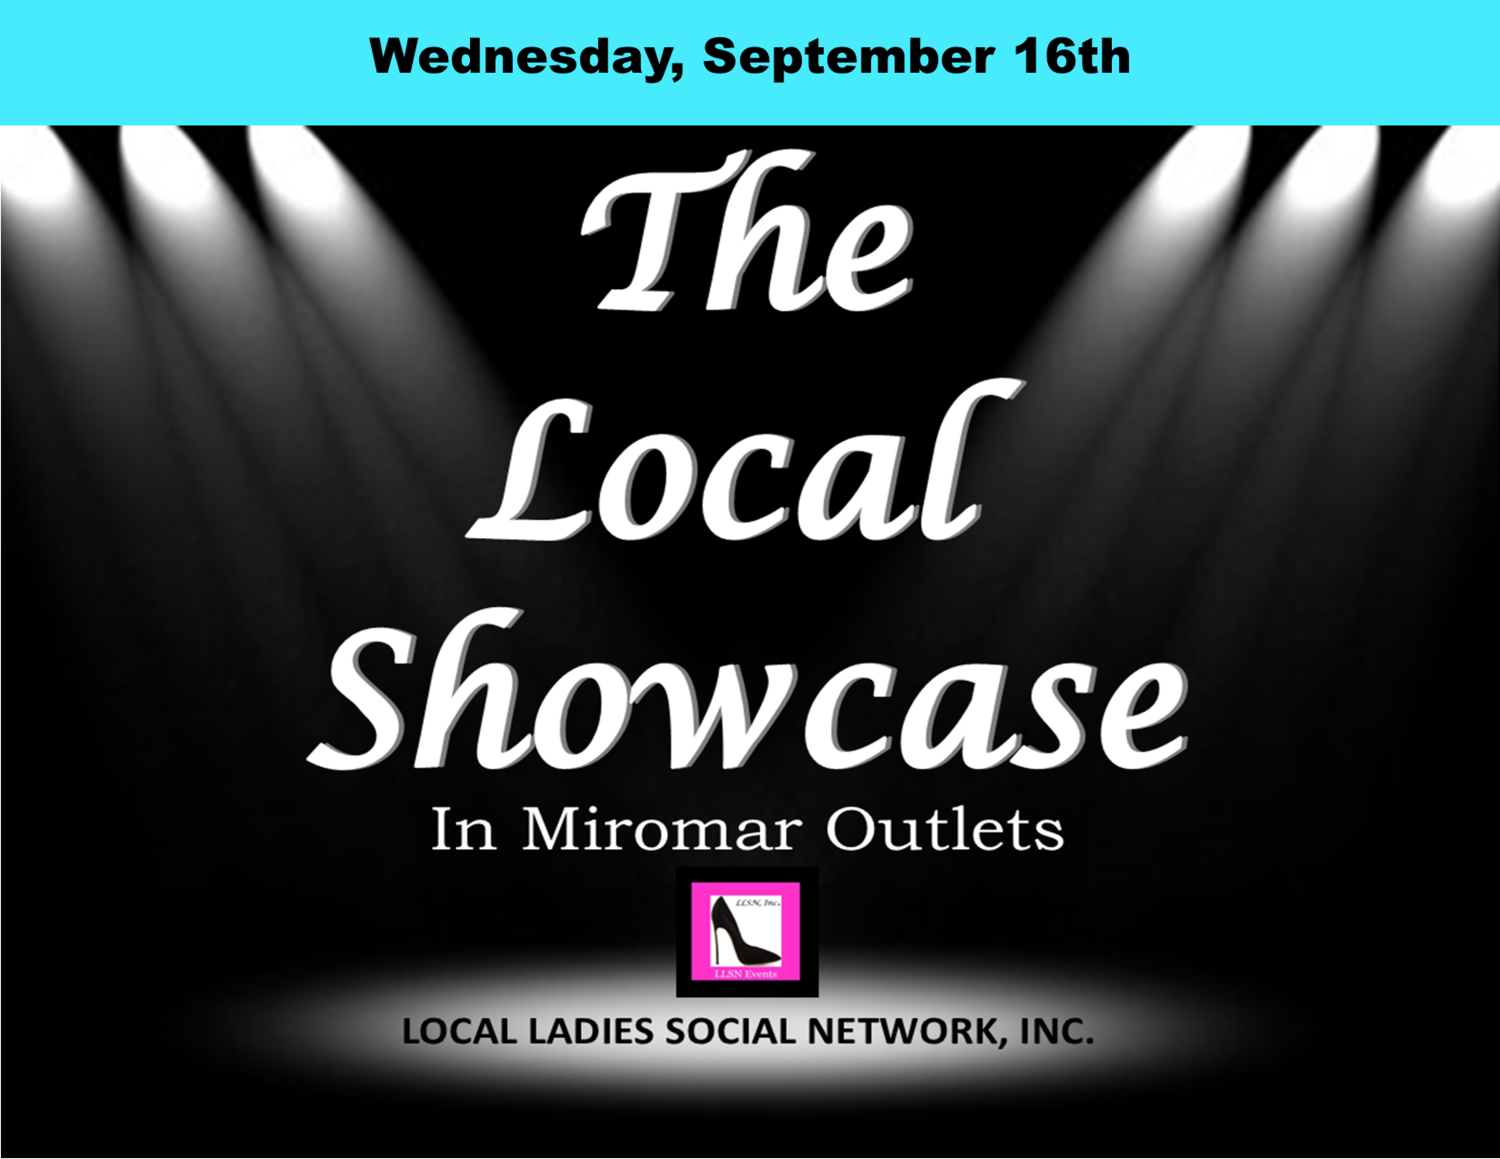 Wed, September 16th 11am-7pm